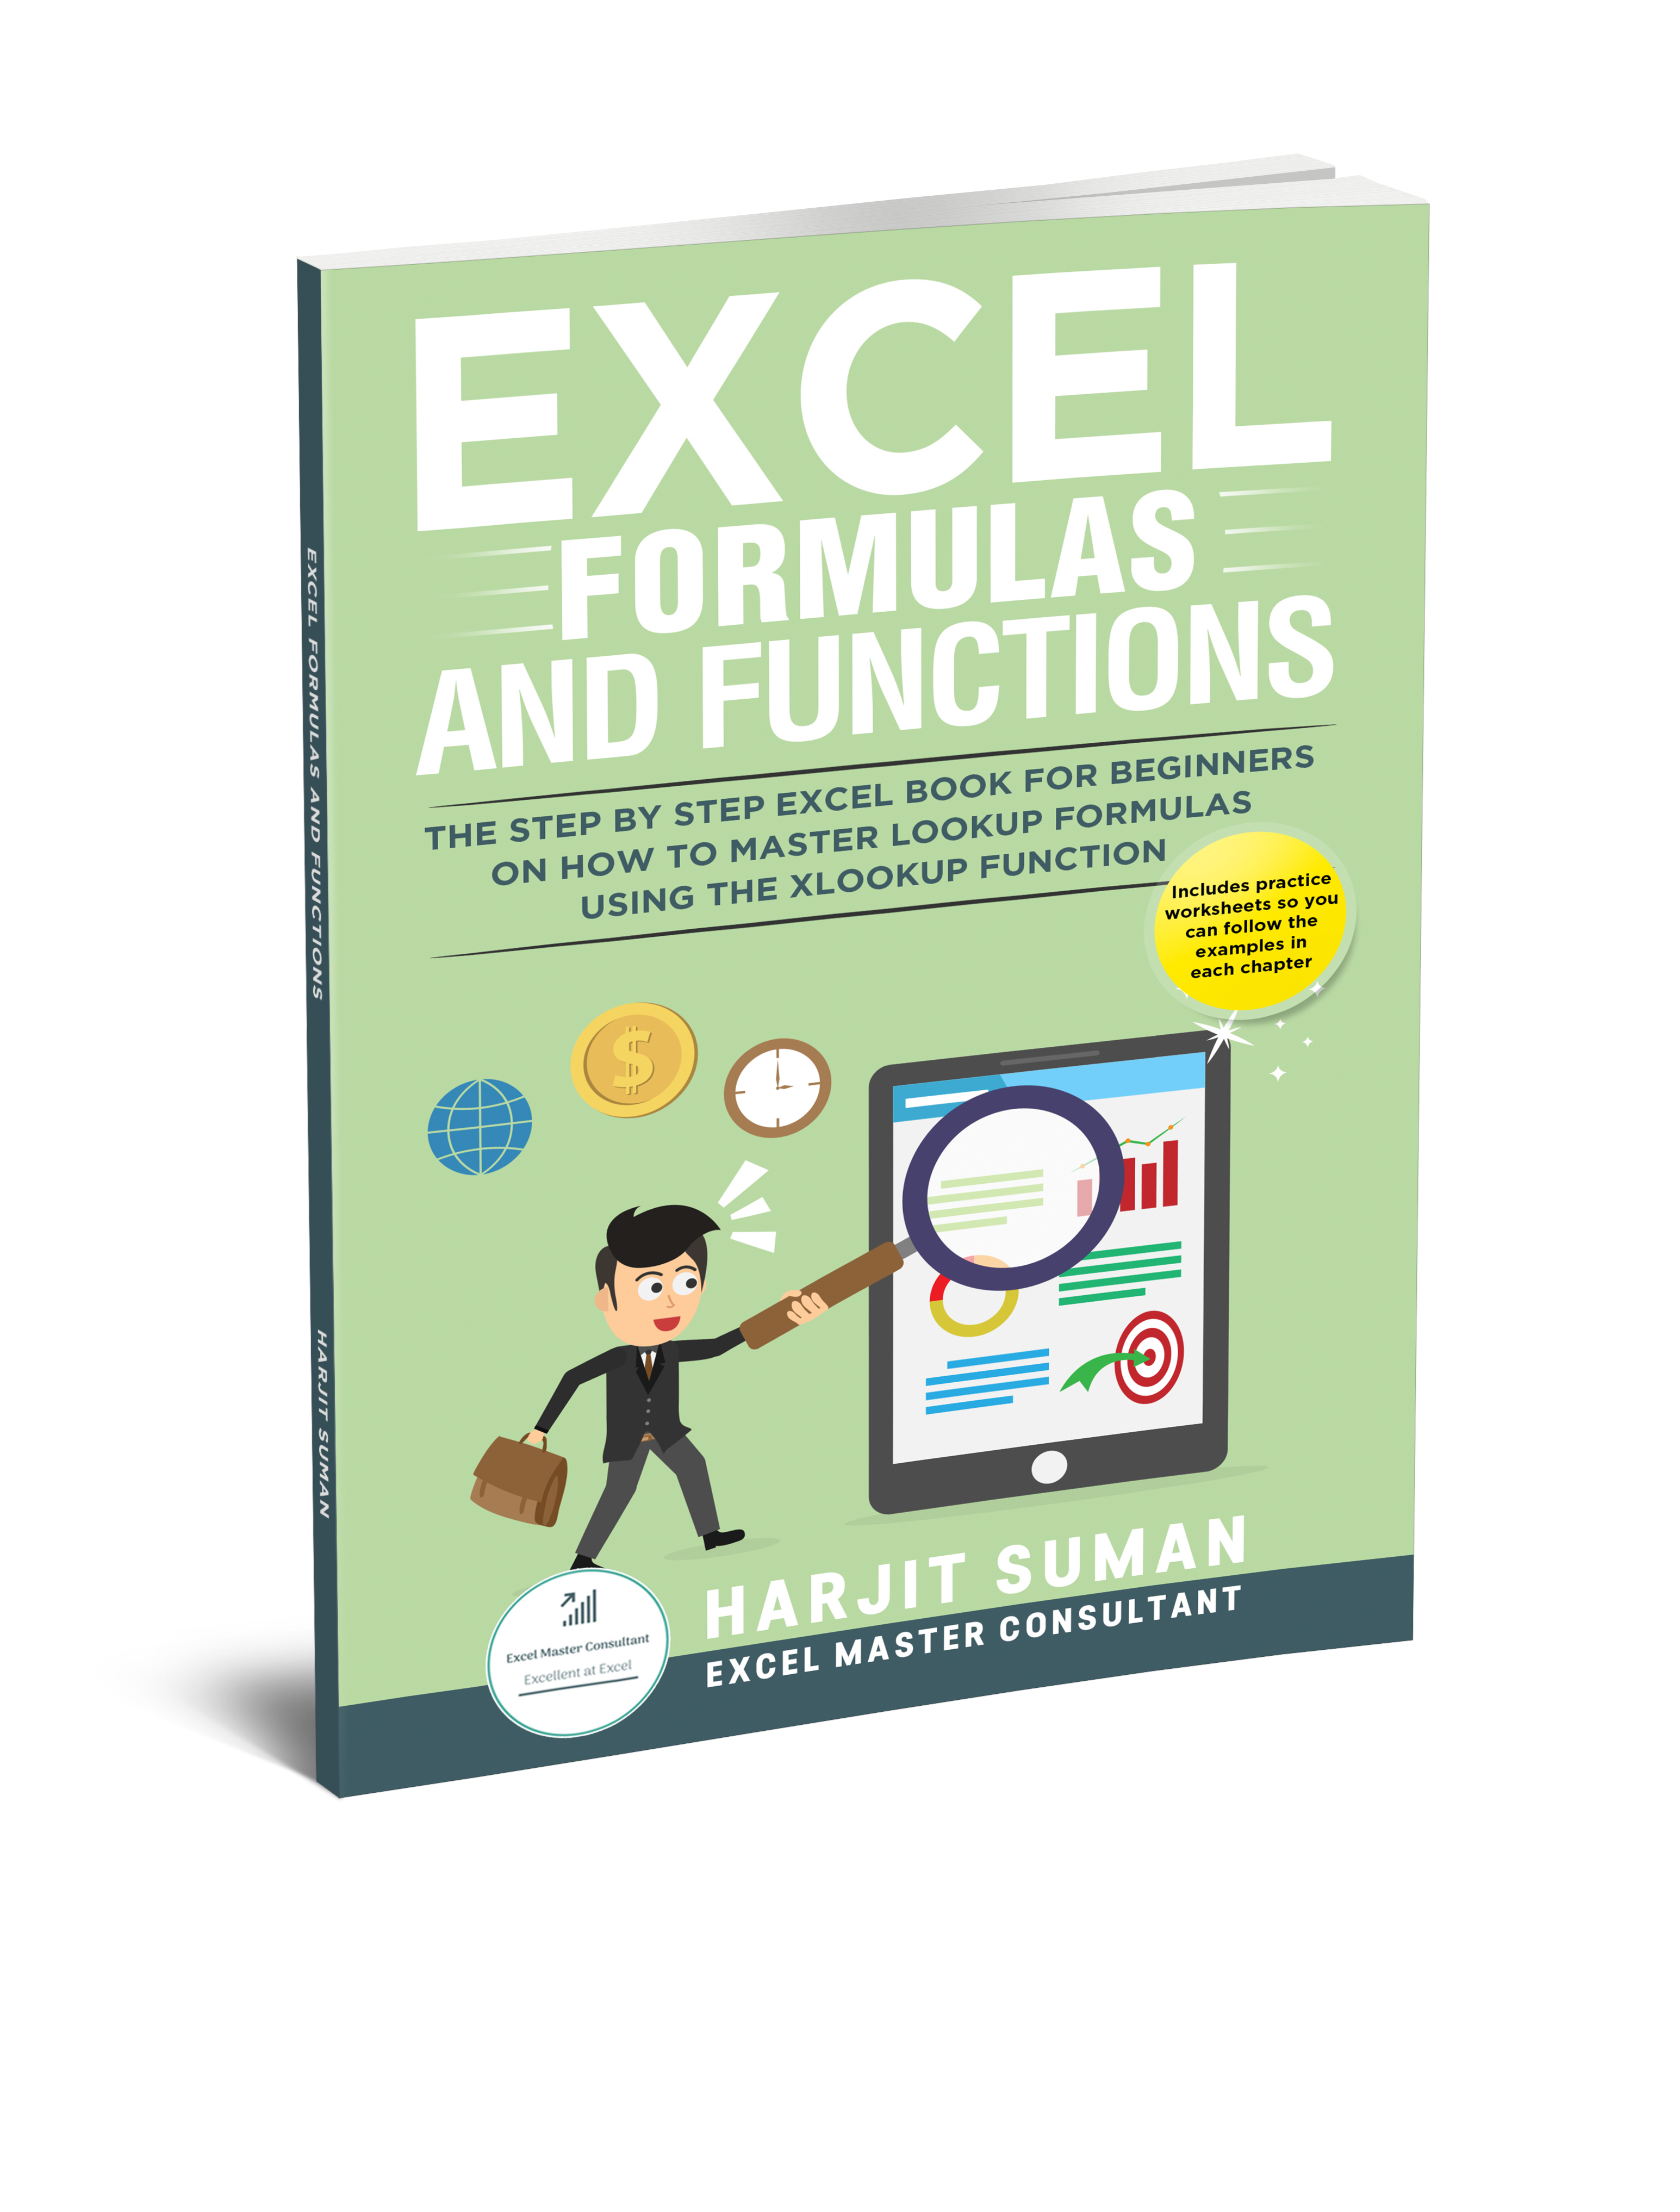 The front cover of Excel Formulas and Functions: The Step by Step Excel Book for Beginners on how to Master Lookup Formulas using the XLOOKUP Function book written by Harjit Suman